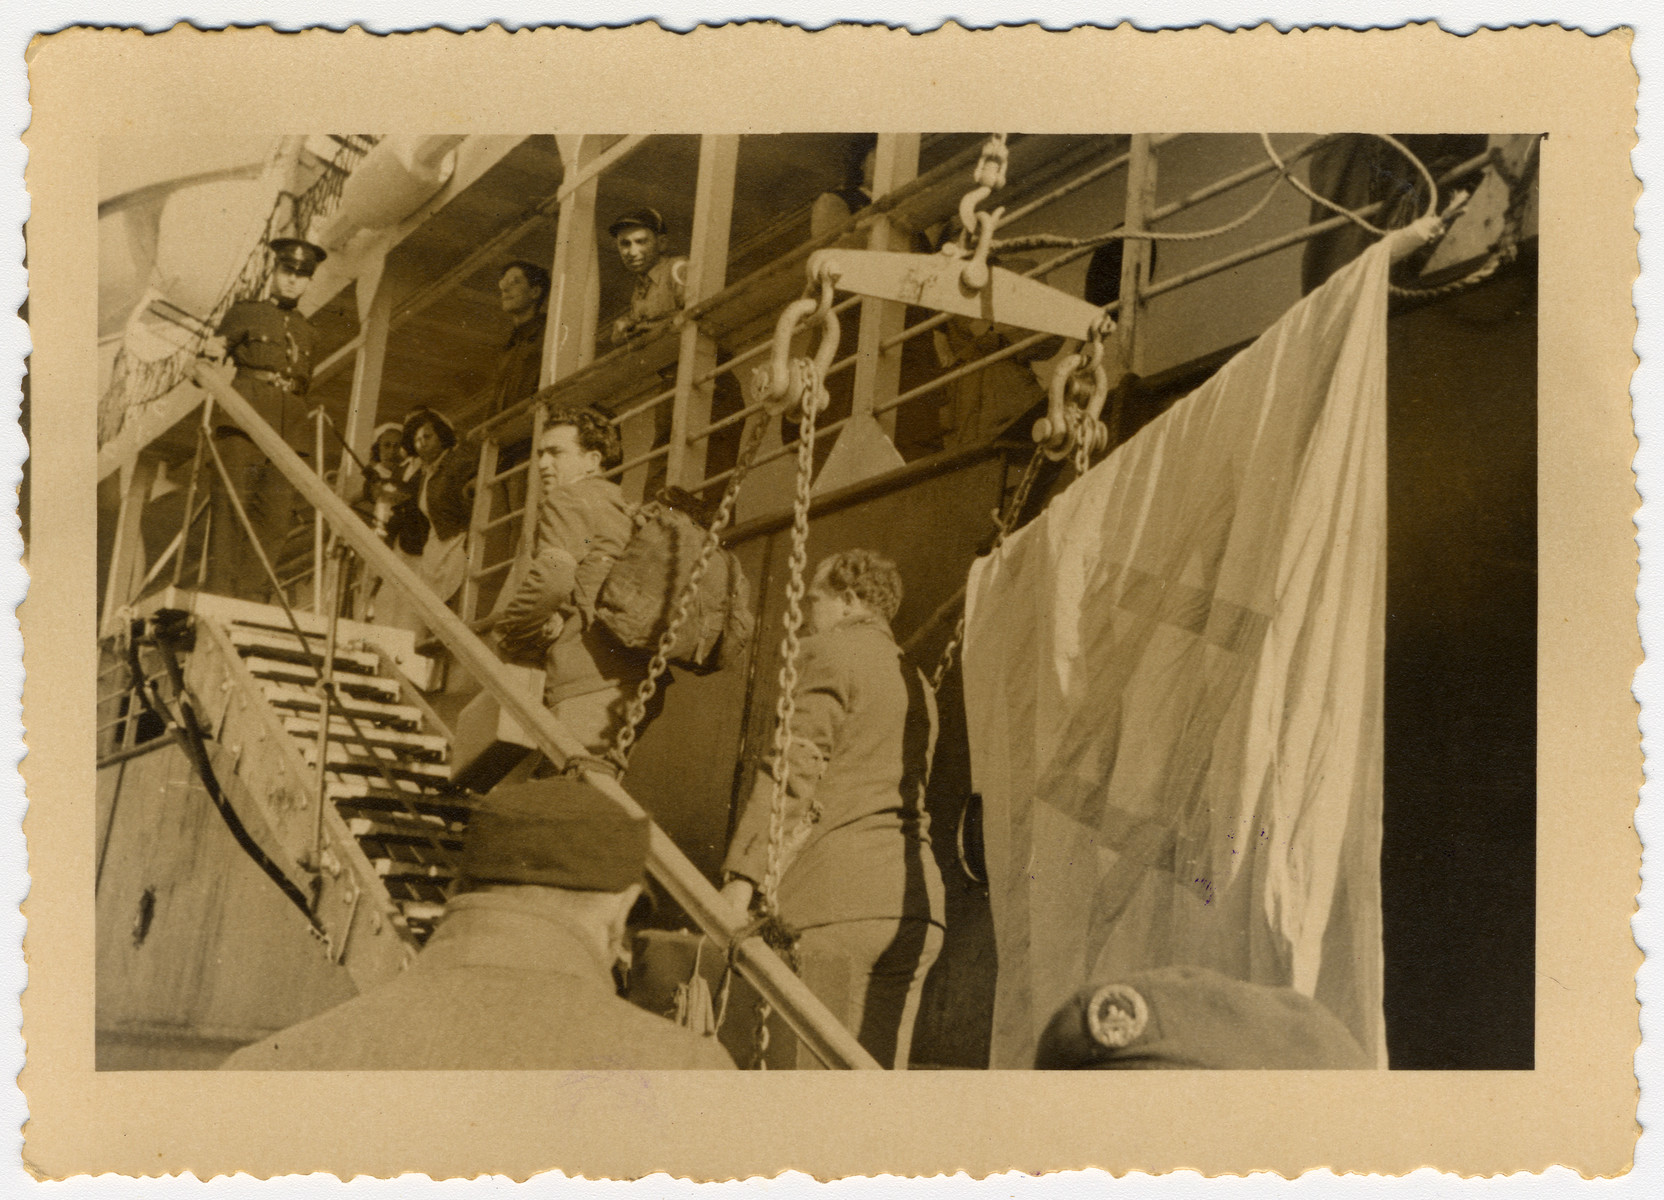 Jewish detainees in Cyprus board the SS Galila or the Atzmaut as they prepare to depart for Israel.